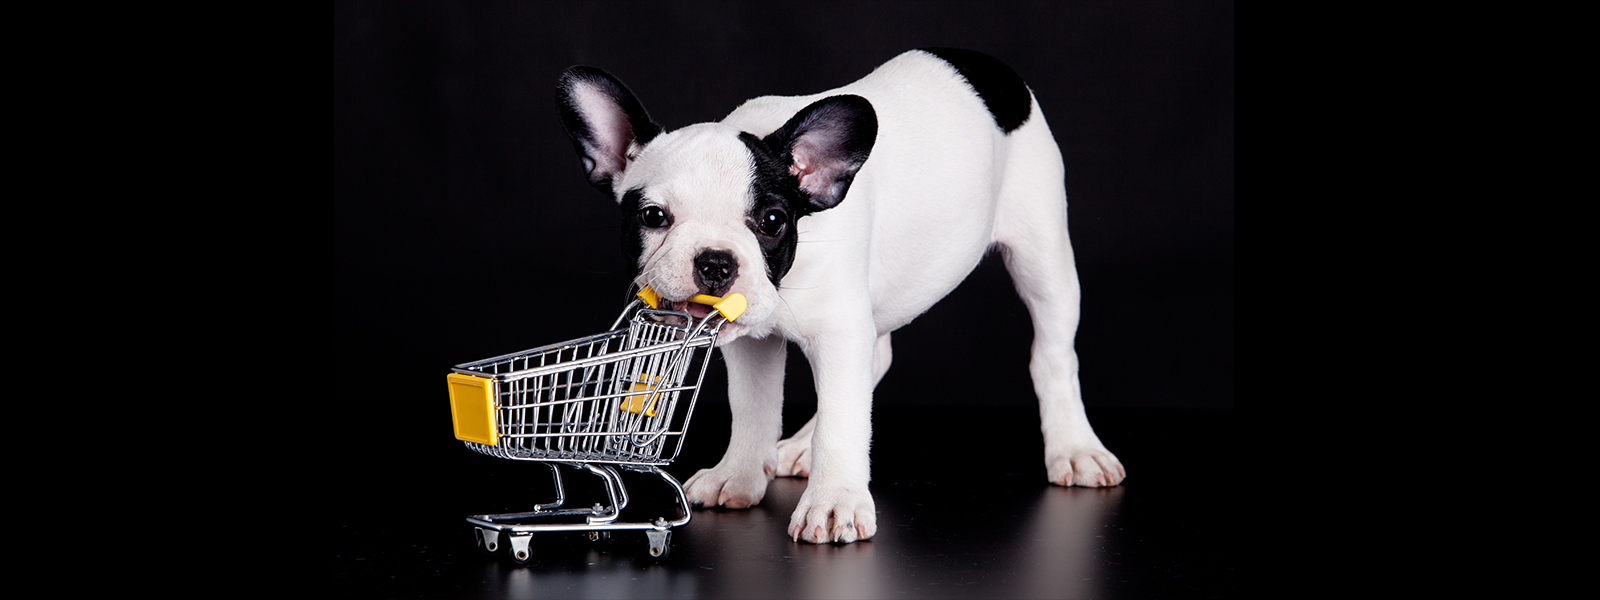 French bulldog playing with a miniature shopping cart